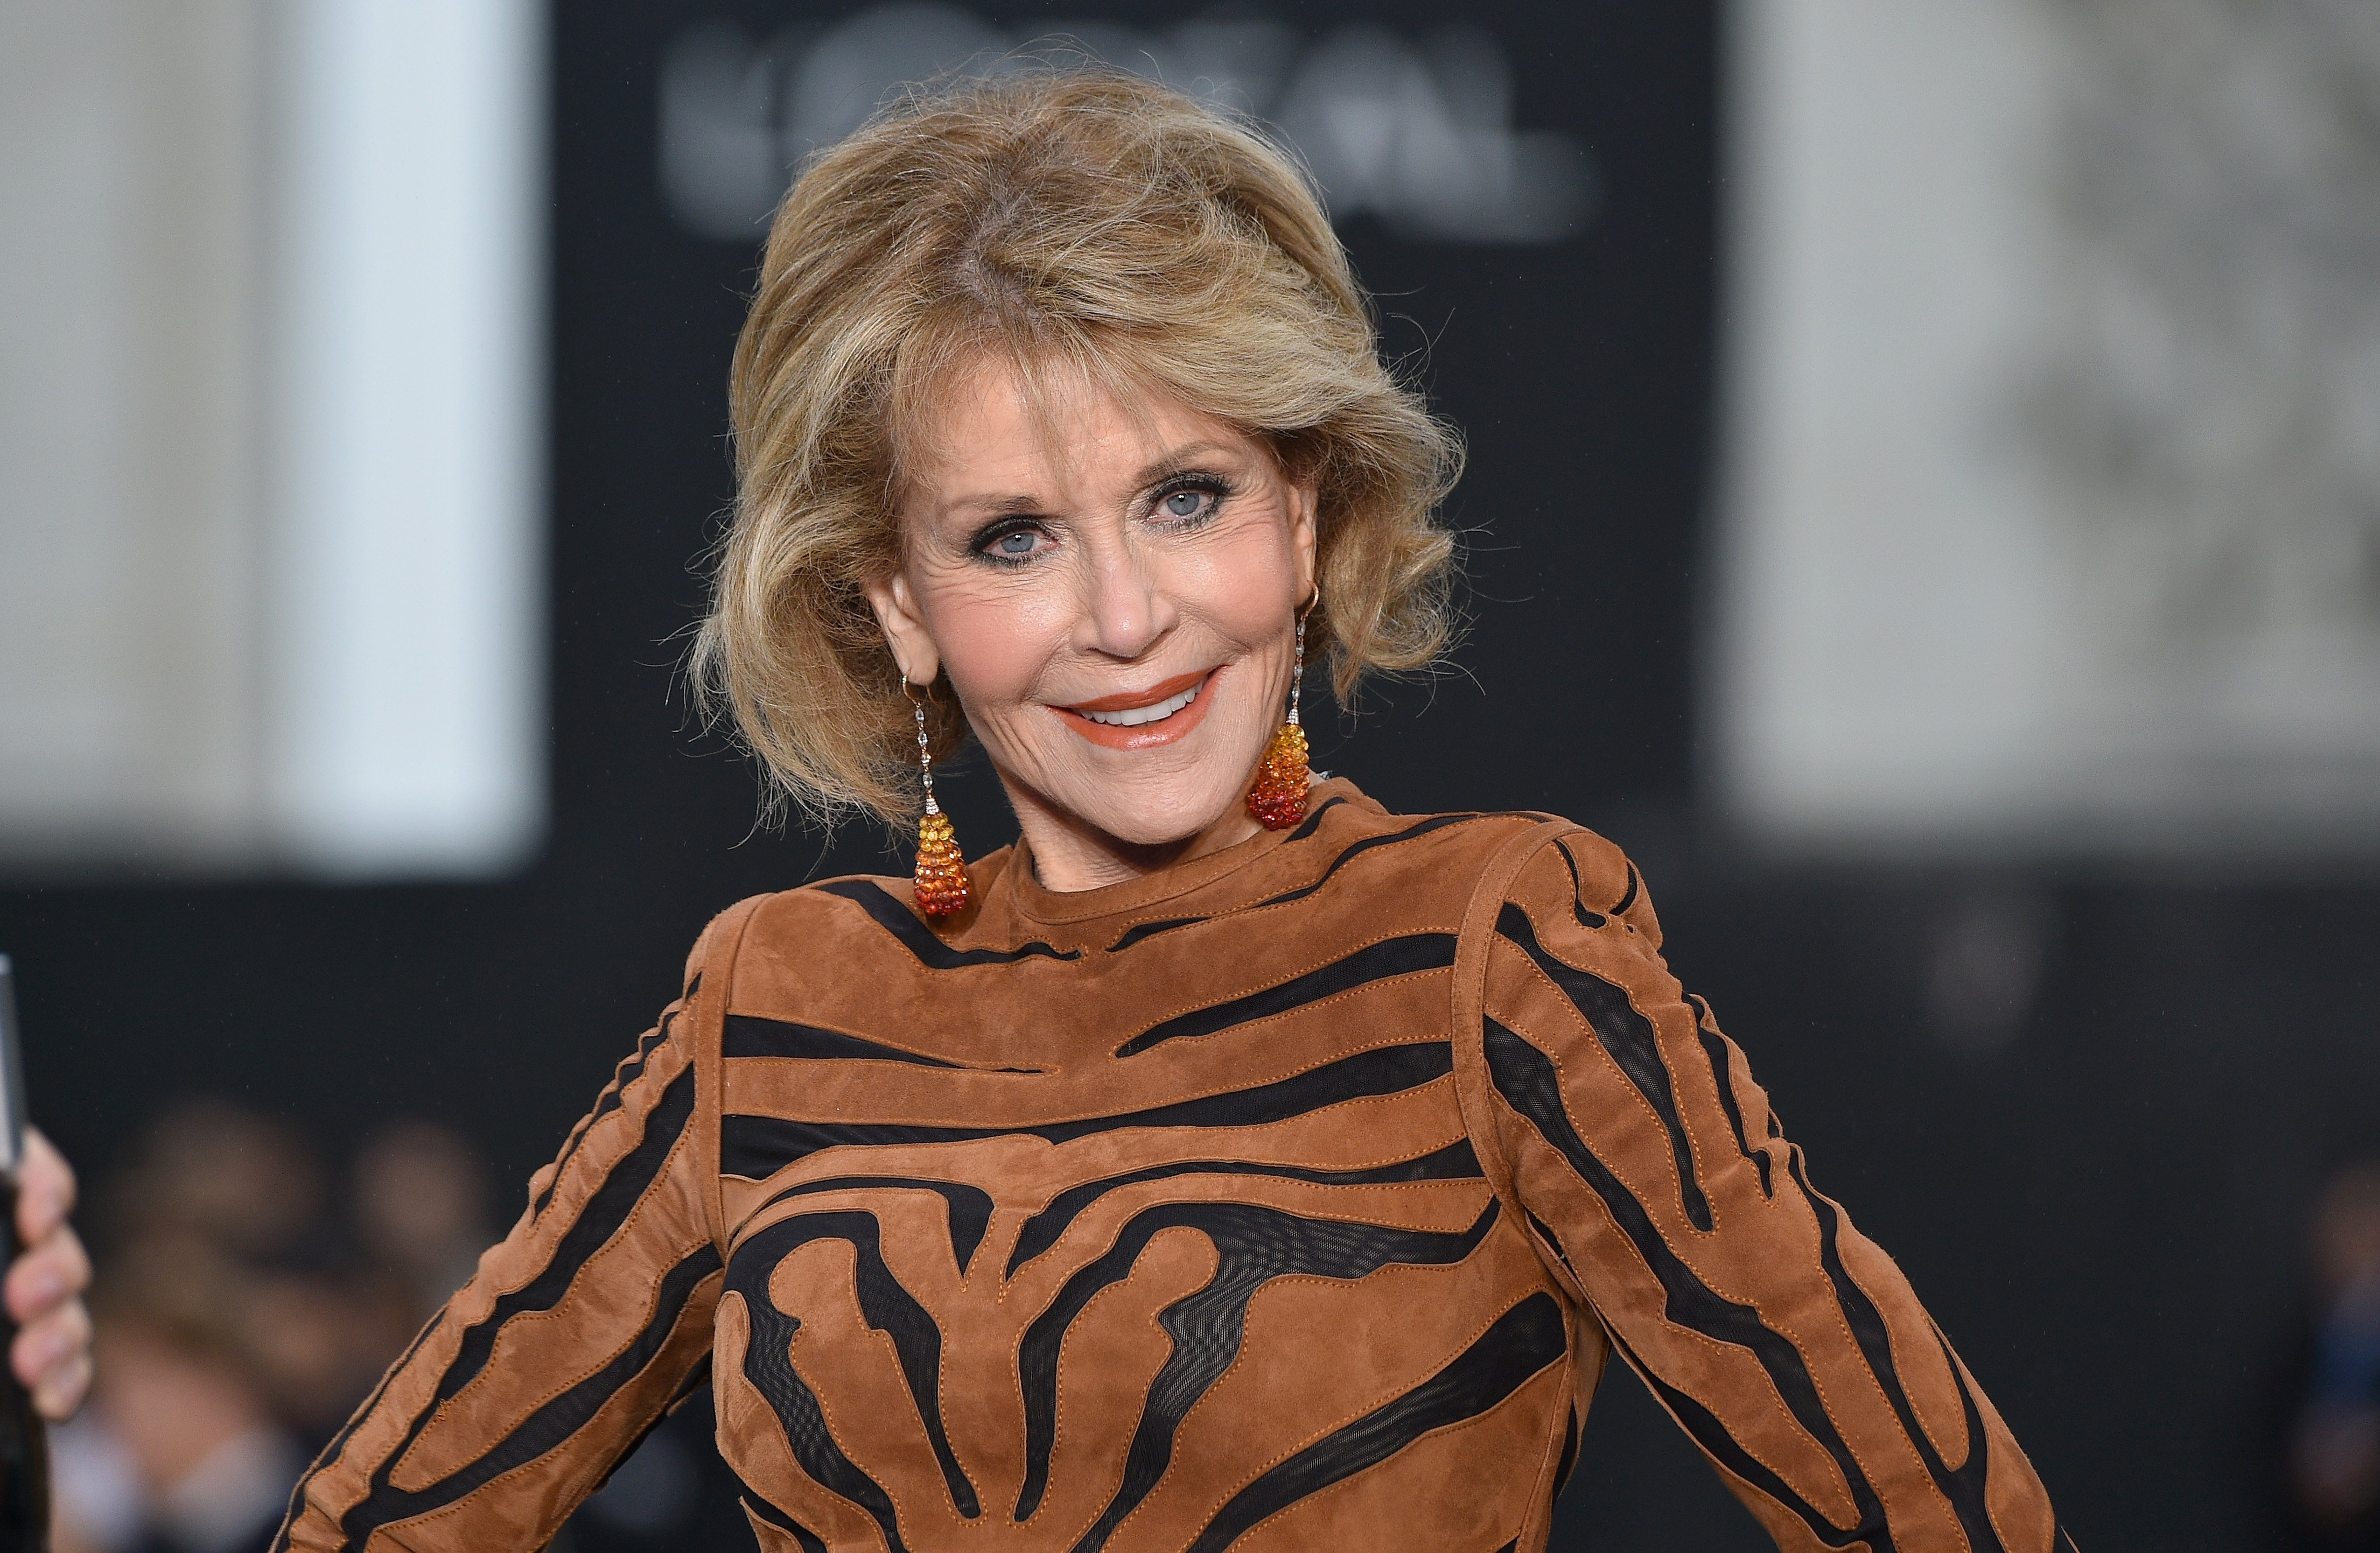 Jane Fonda at Paris Fashion Week at Avenue Des Champs Elysees on October 1, 2017. | Source: Getty Images